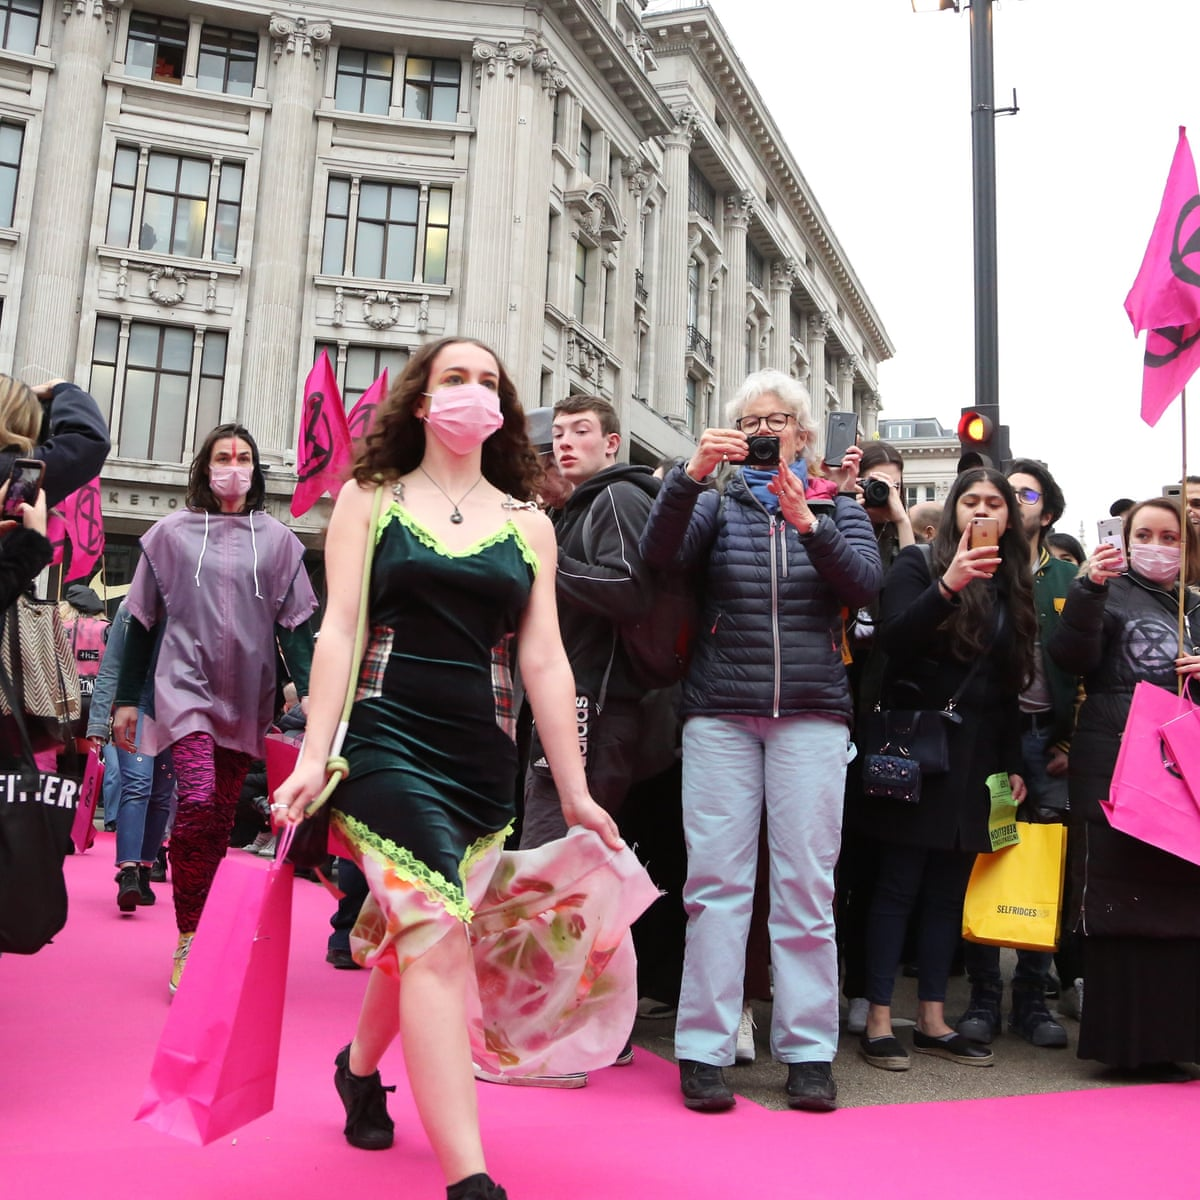 Scrap The Catwalk Extinction Rebellion Is Right London Fashion Week Is Unsustainable London Fashion Week The Guardian